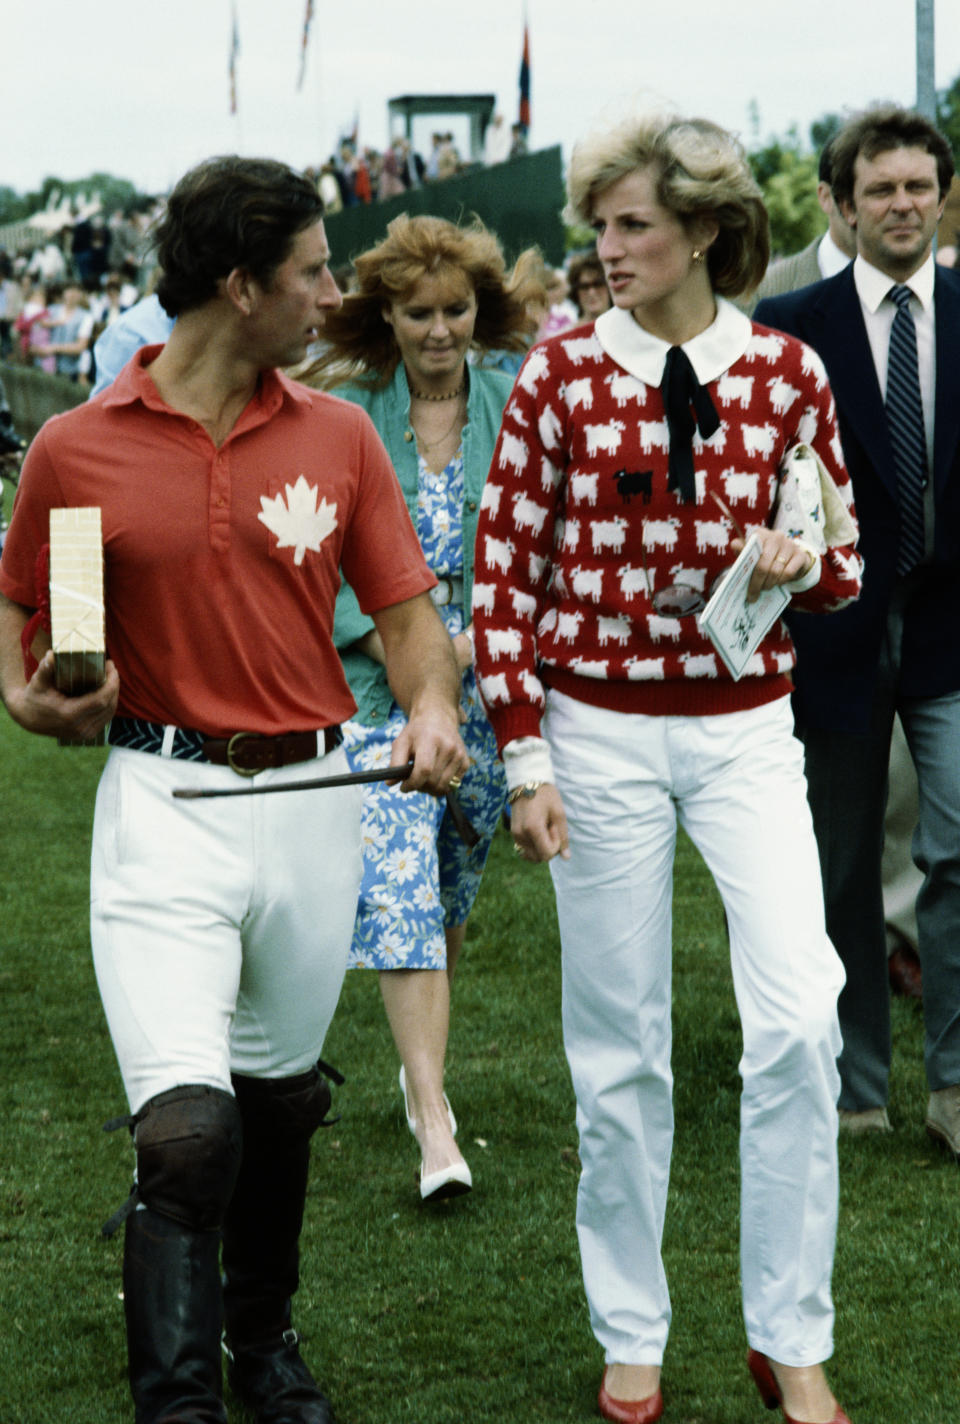 Princess Diana (1961 - 1997) in a Smith's Lawn sweater, with Prince Charles at a polo meeting at Windsor, June 1983. With them is Sarah Ferguson (centre). (Photo by Jayne Fincher/Princess Diana Archive/Getty Images)